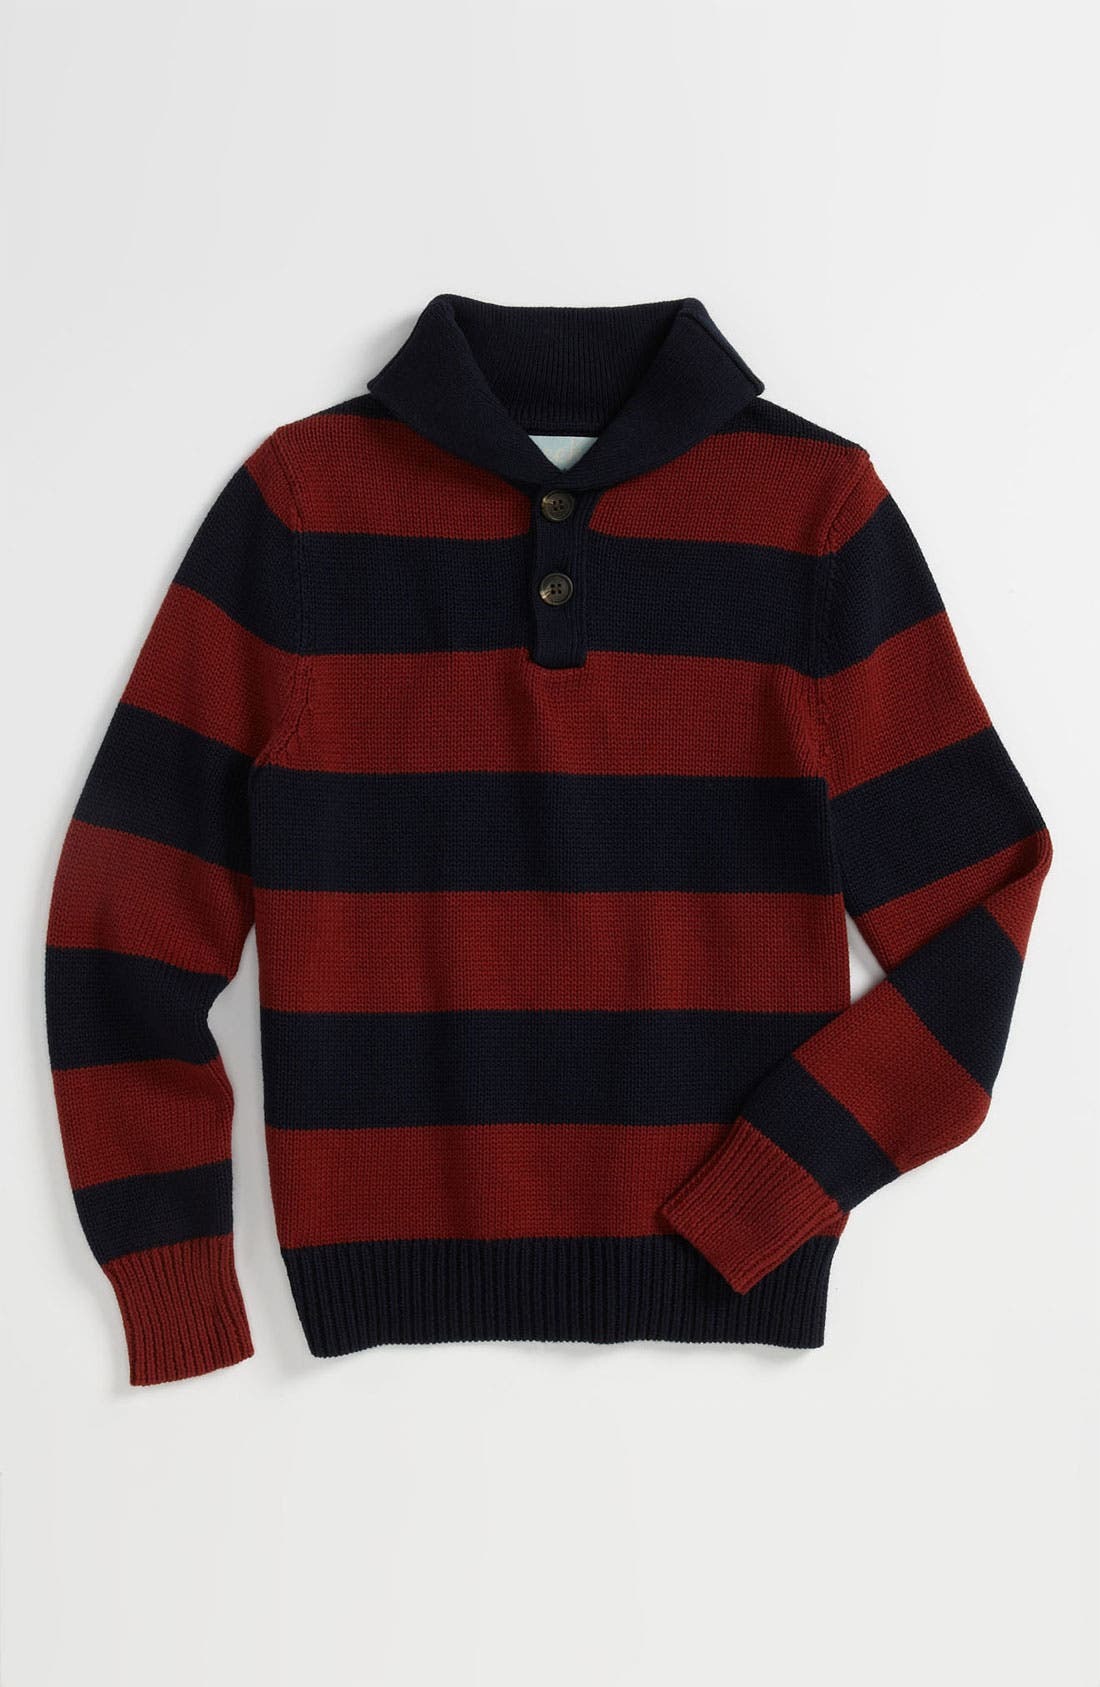 Main Image - Peek 'Cooper' Stripe Sweater (Toddler, Little Boys & Big Boys)